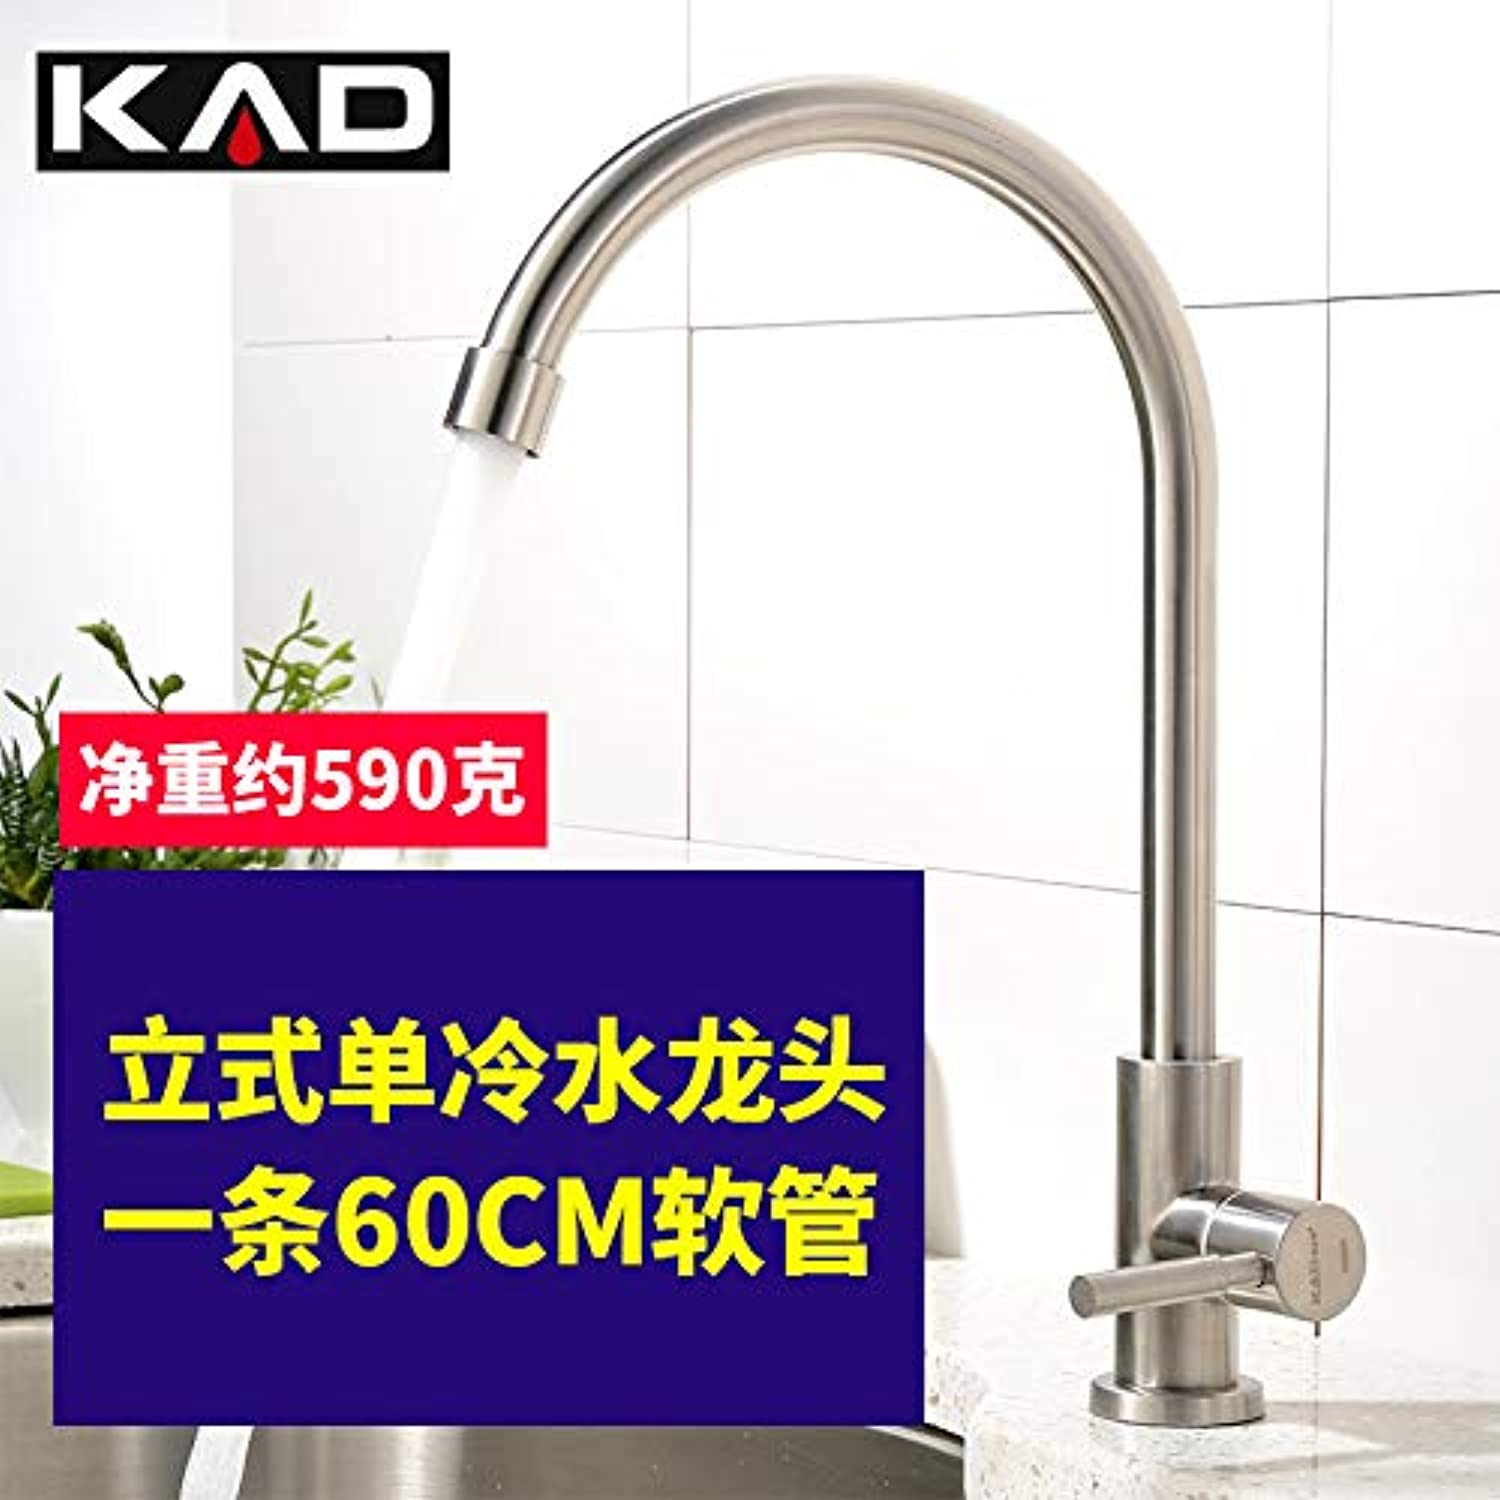 Hlluya Professional Sink Mixer Single cold kitchen faucet 304 stainless steel dish washing basin of the sink faucet dish pool single handle single hole, greenical single cold kitchen faucet +60cm Hose